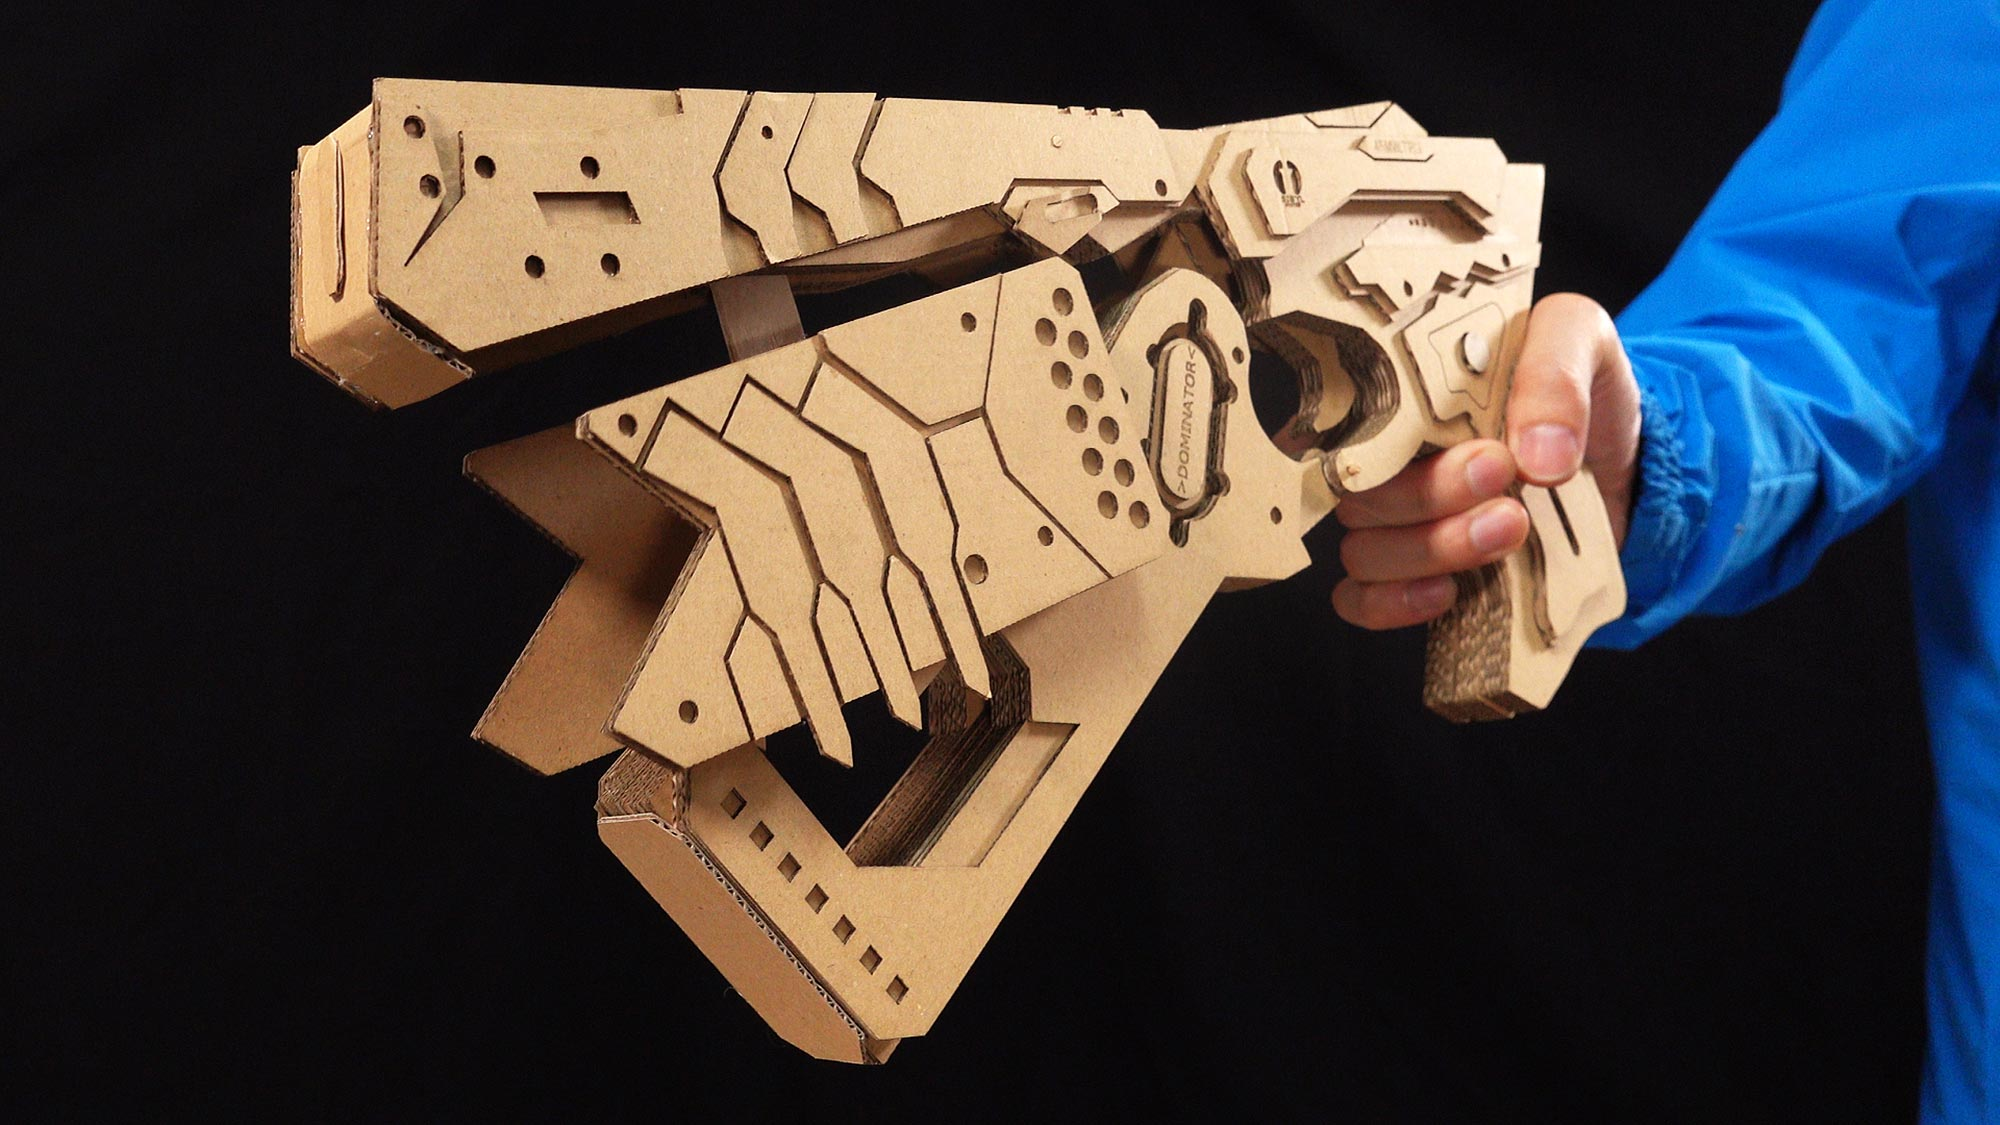 someone made a psychopass dominator gun prop entirely out